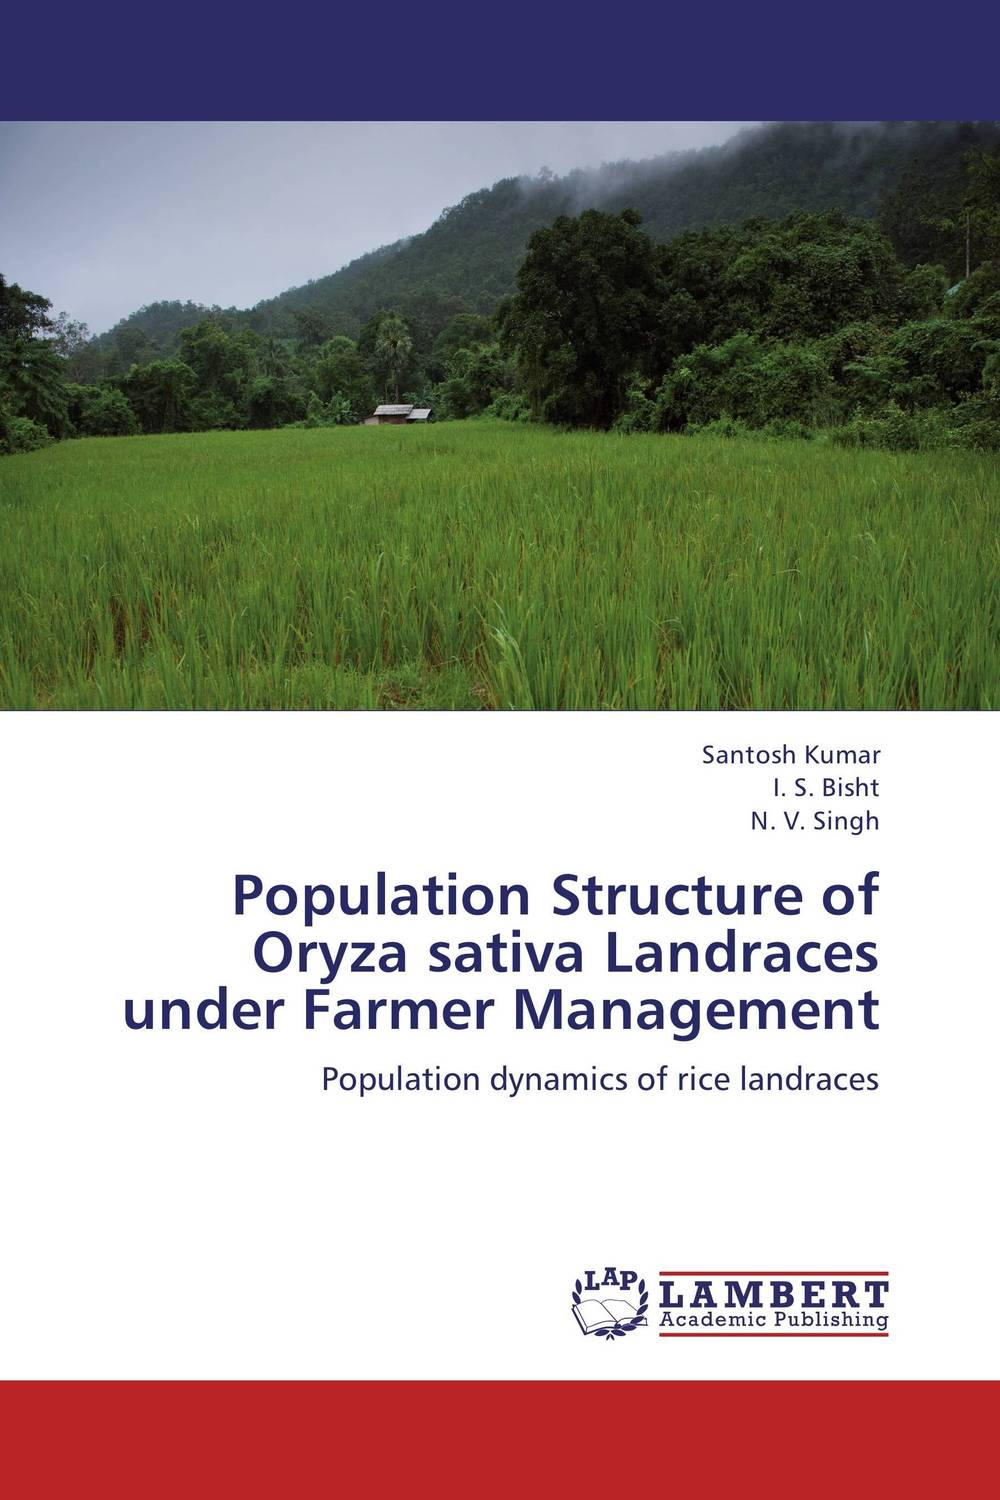 Population Structure of Oryza sativa Landraces under Farmer Management k r k naidu a v ramana and r veeraraghavaiah common vetch management in rice fallow blackgram